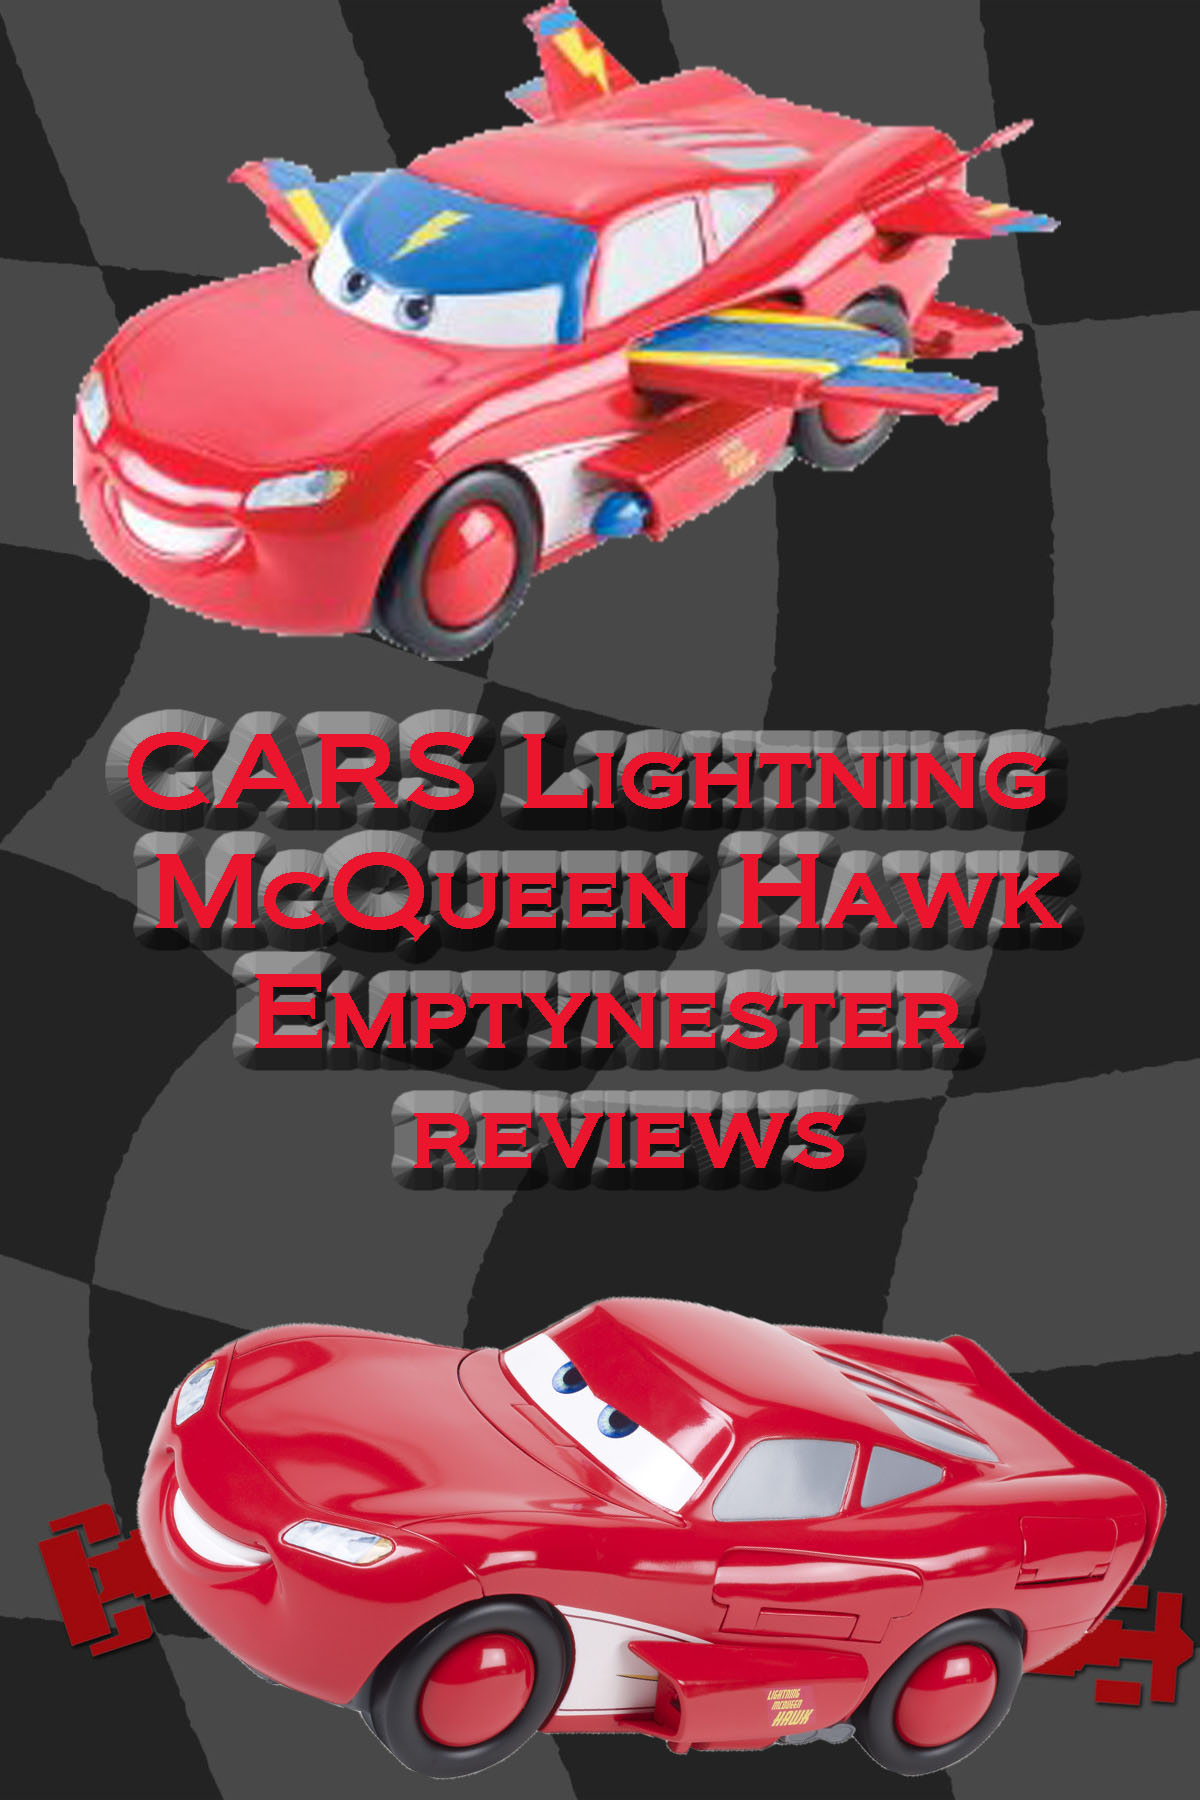 CARS Lightning McQueen Hawk review by Mattel # 1 HOLIDAY PICK from EMPTYNESTER REVIEWS FOR BOYS!